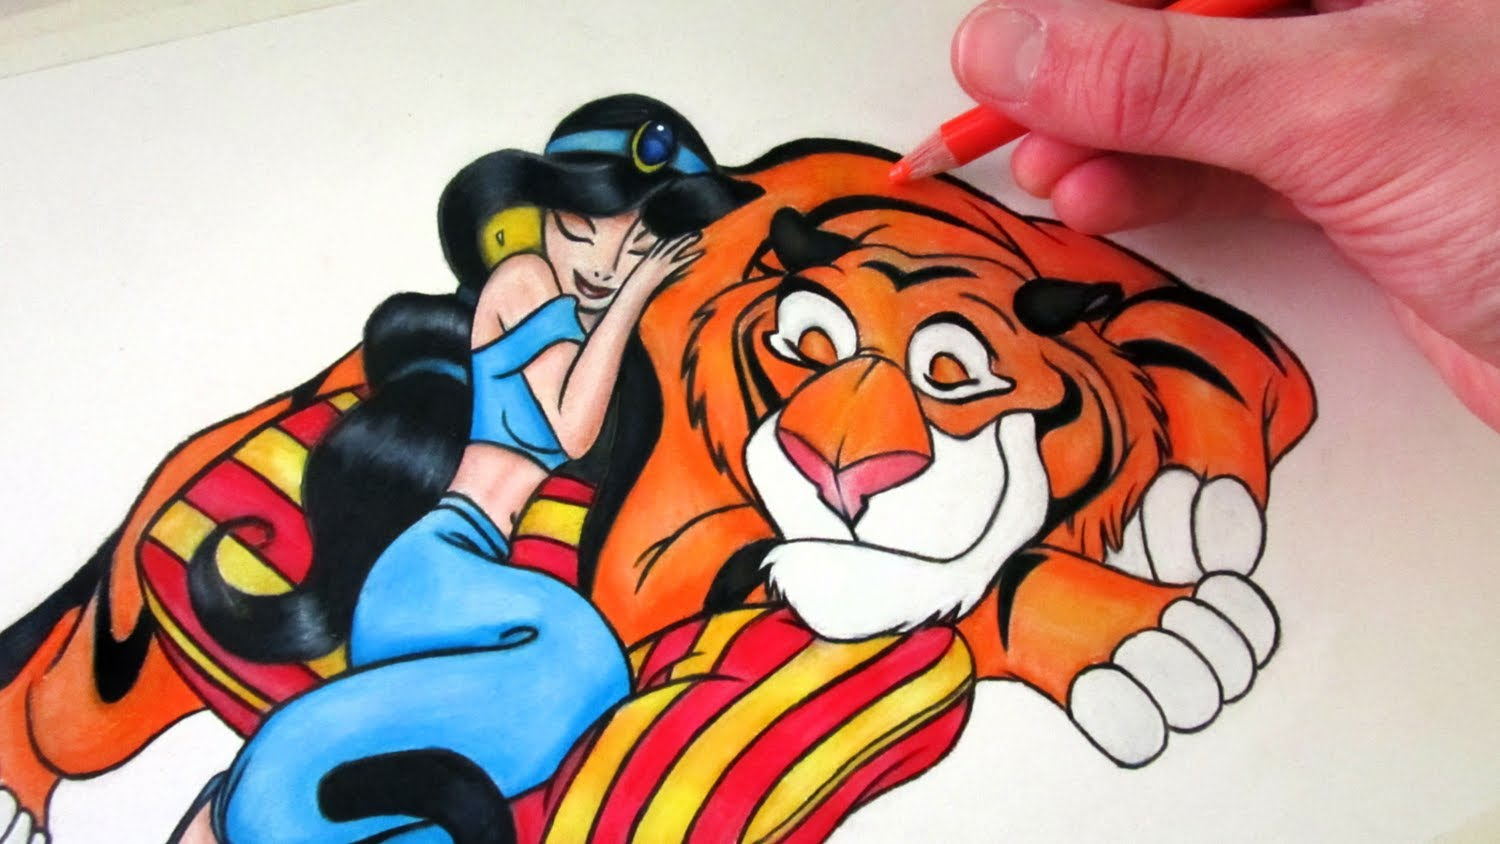 The best free Rajah drawing images  Download from 7 free drawings of